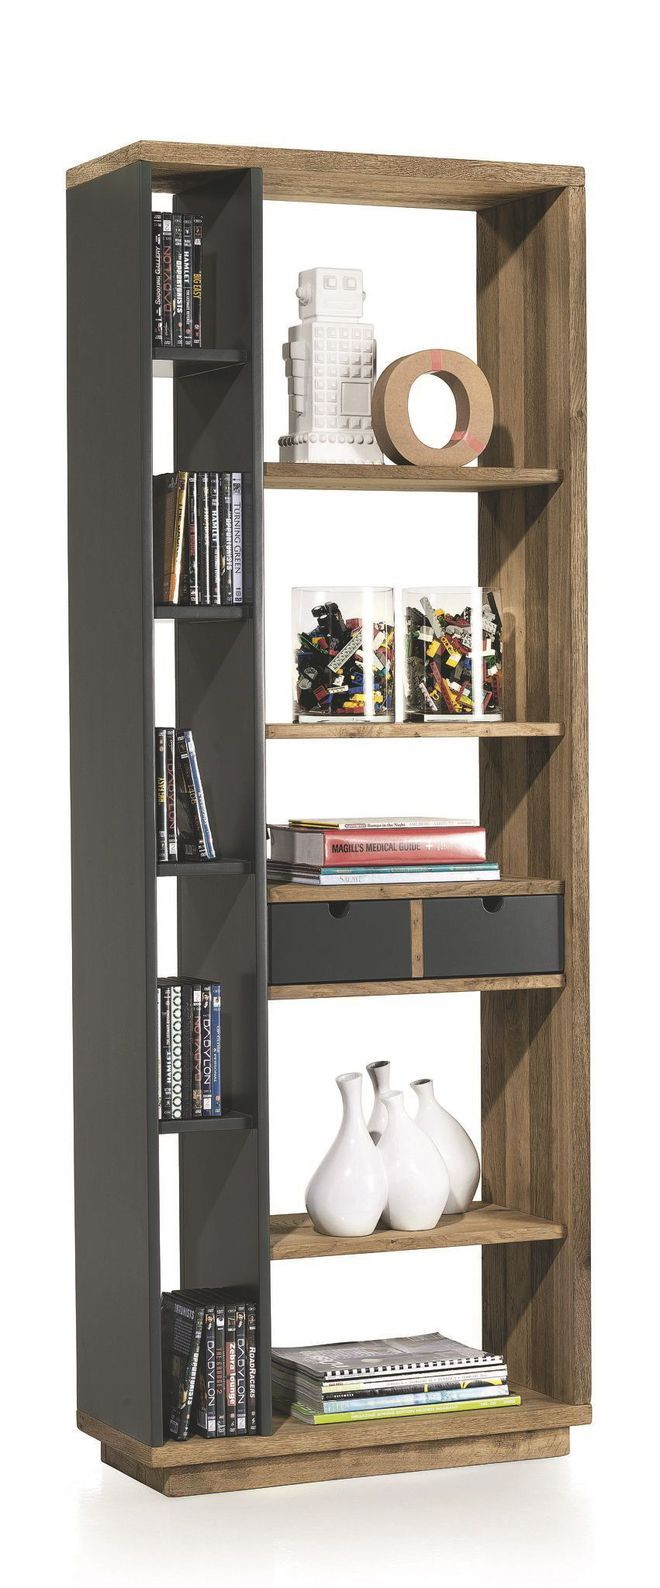 1000 ideas about etagere design on pinterest bureau avec tag re shelves and cr maill re tag re. Black Bedroom Furniture Sets. Home Design Ideas